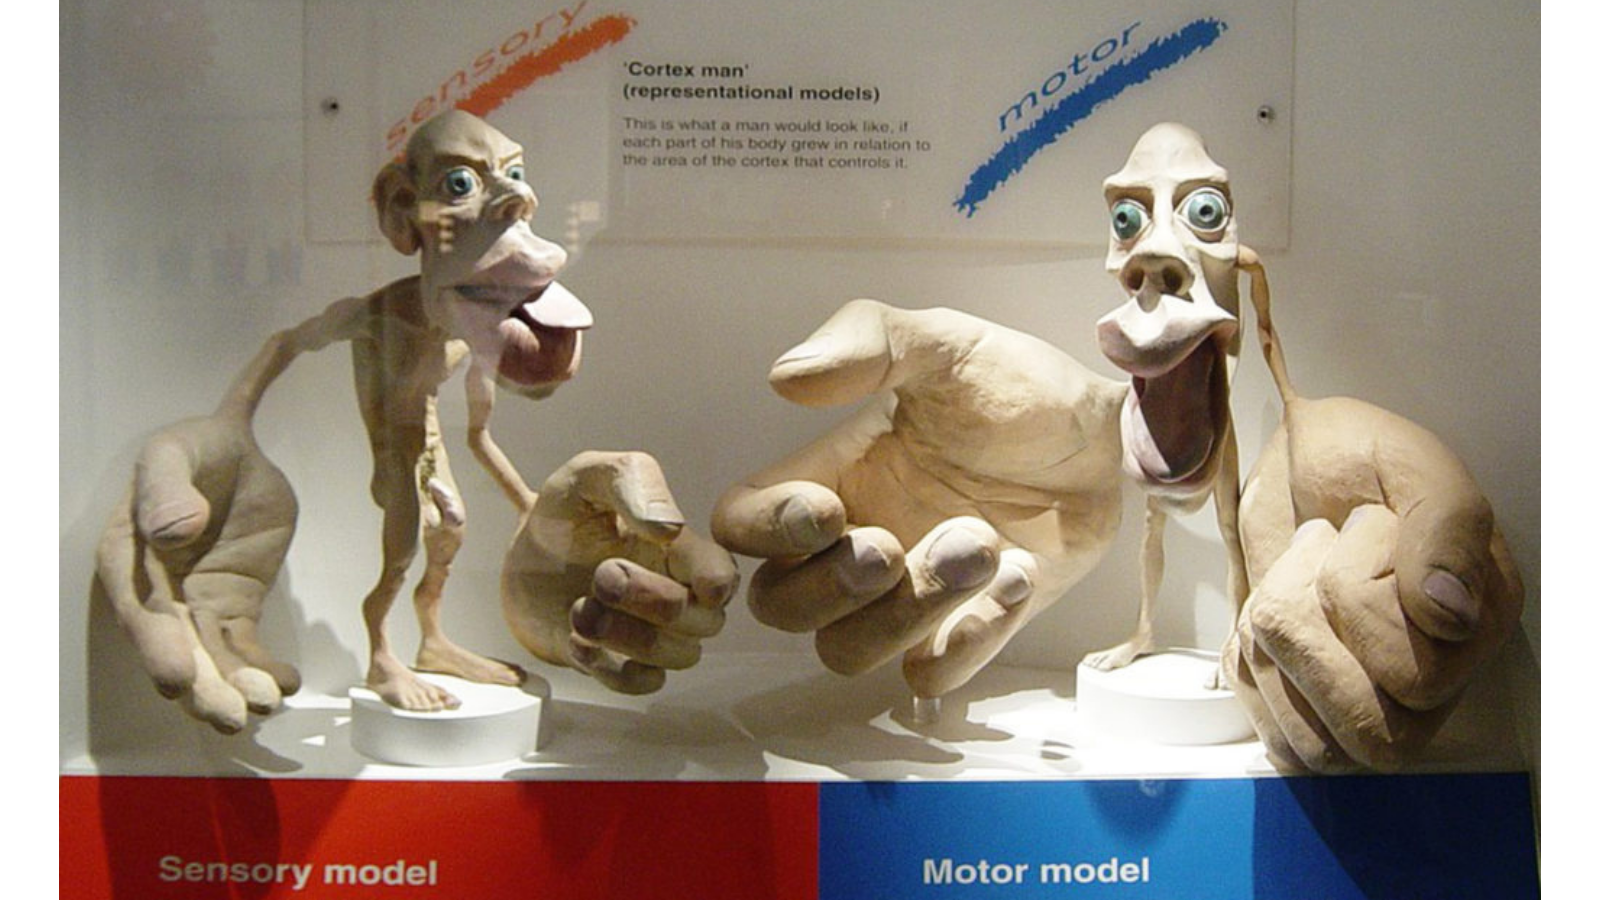 Image of the sensory and motor homunculus